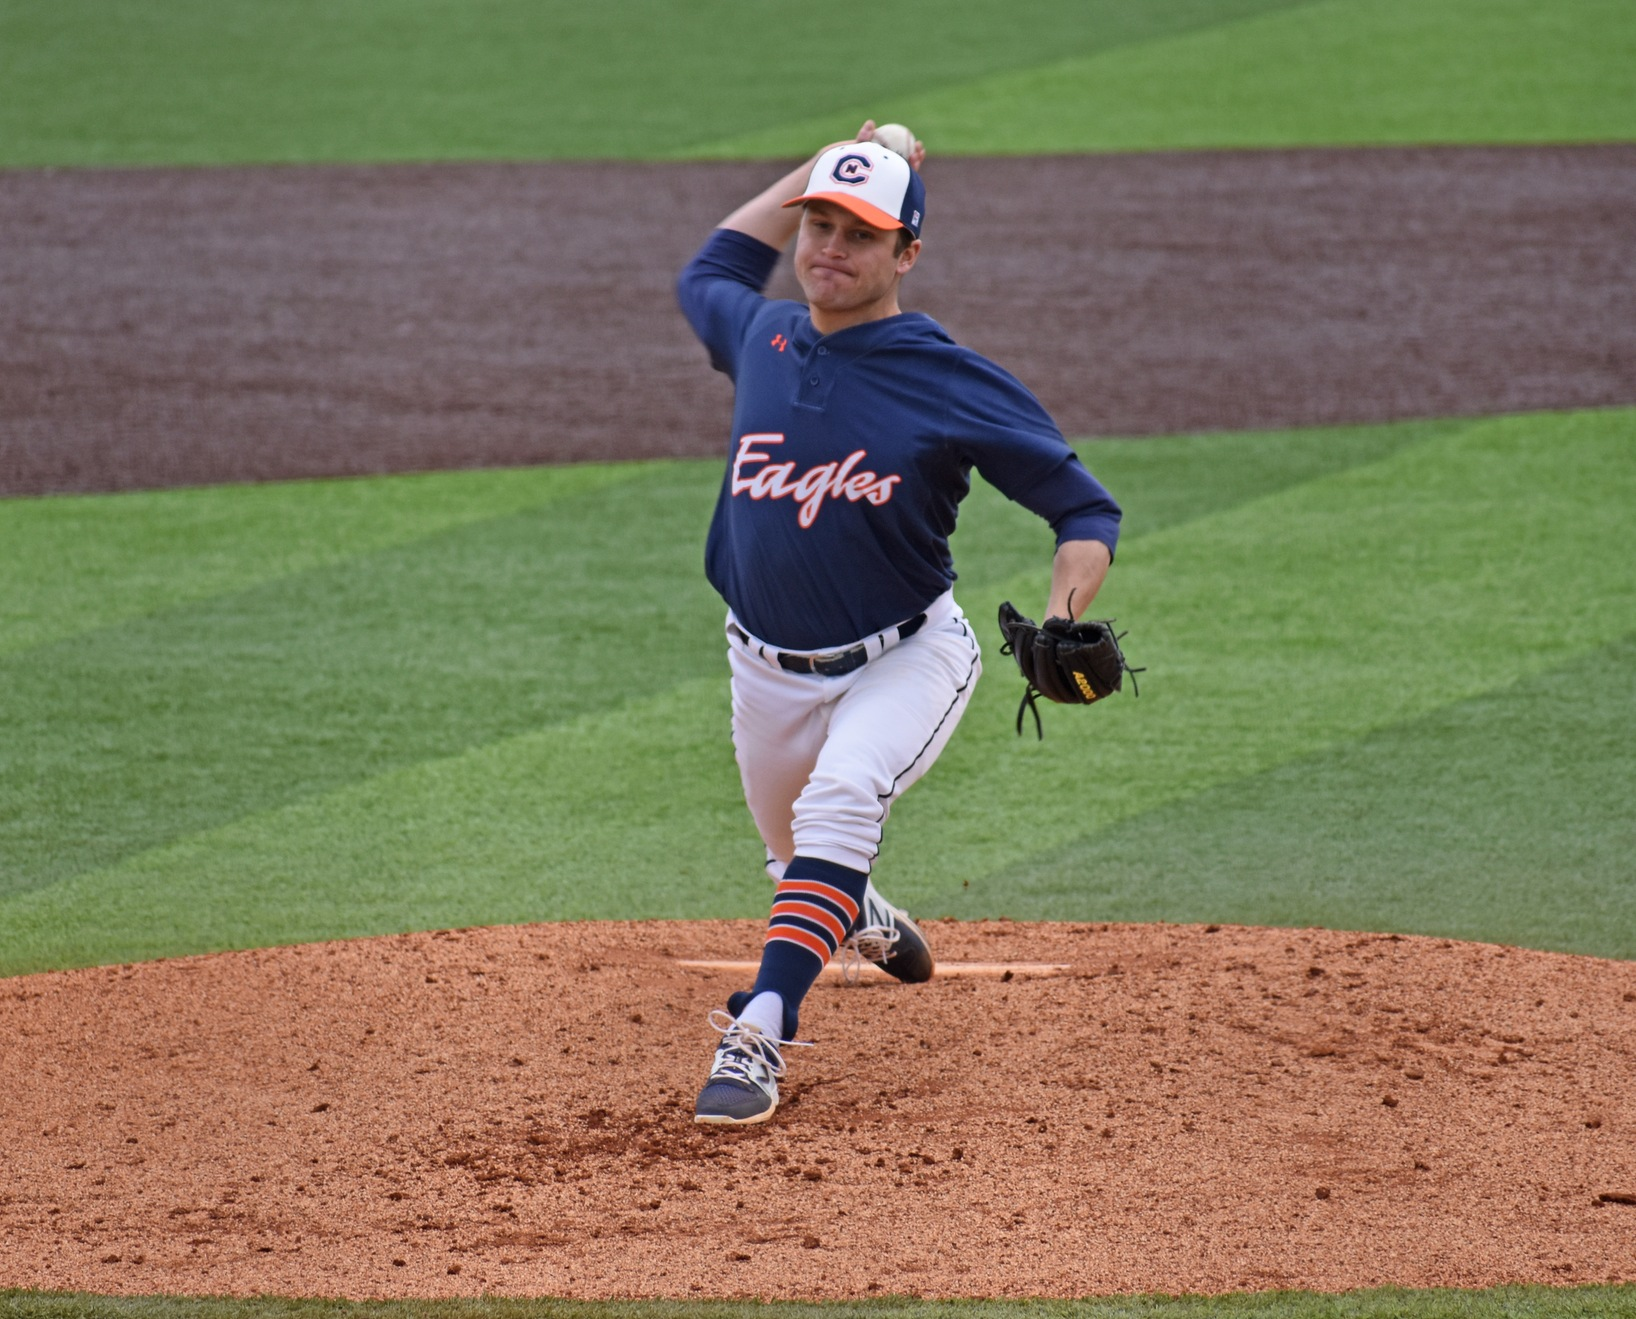 Pitcher's duel ends in LMU walk-off win